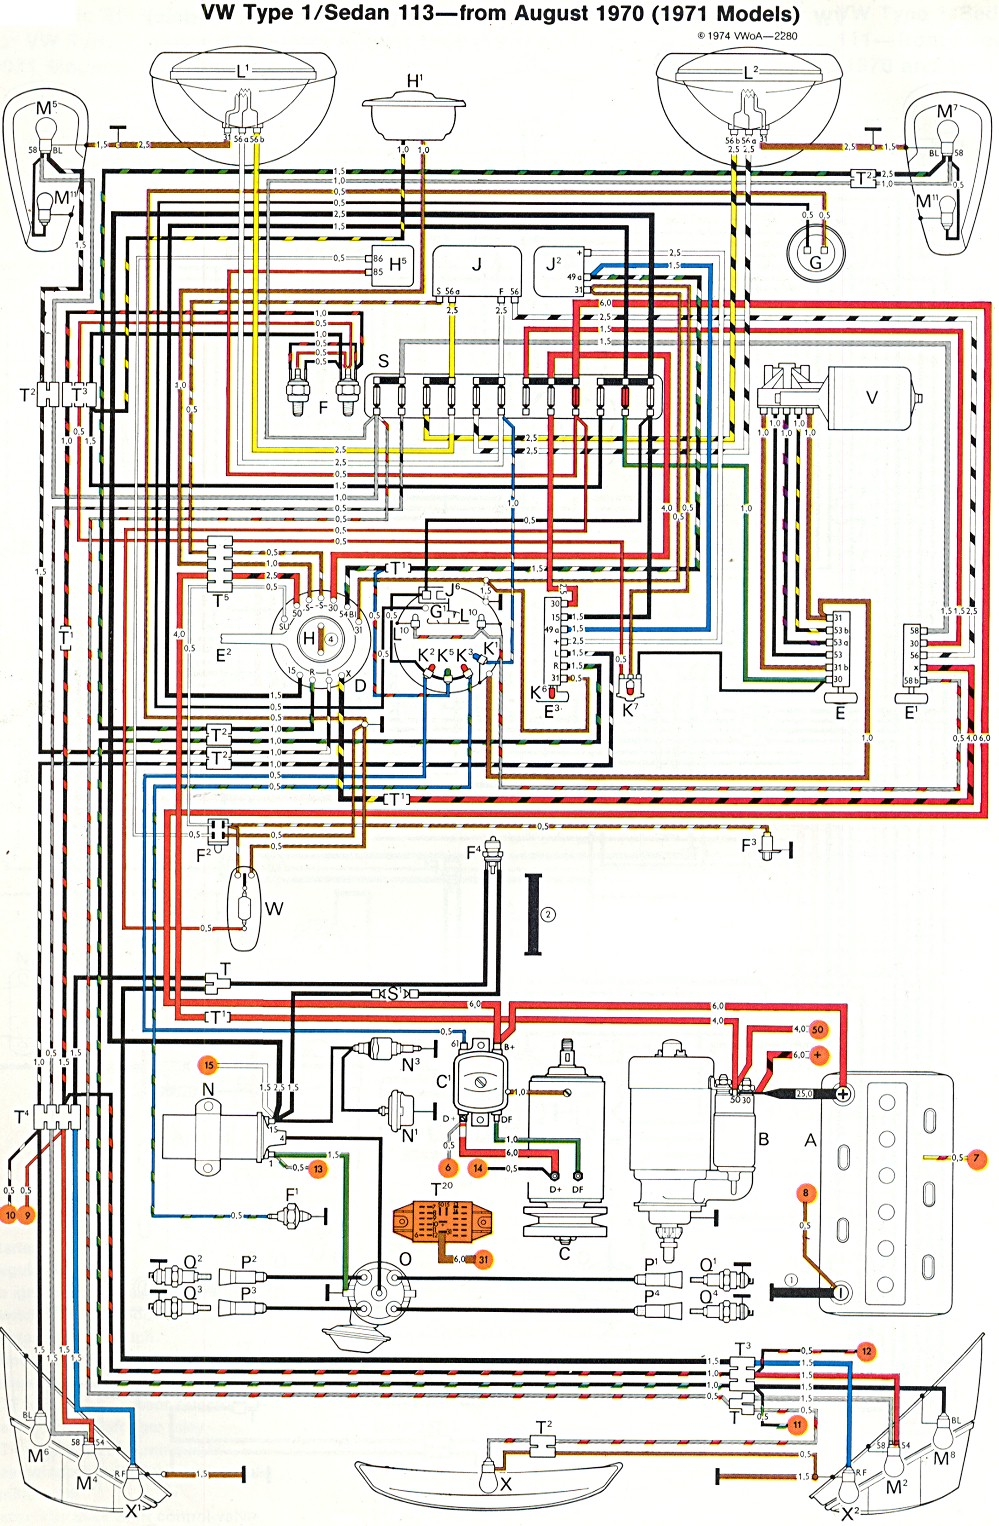 medium resolution of wiring diagram for 2002 volkswagen beetle detailed wiring diagram alternator external regulator wiring diagram 2002 vw beetle alternator wiring harness